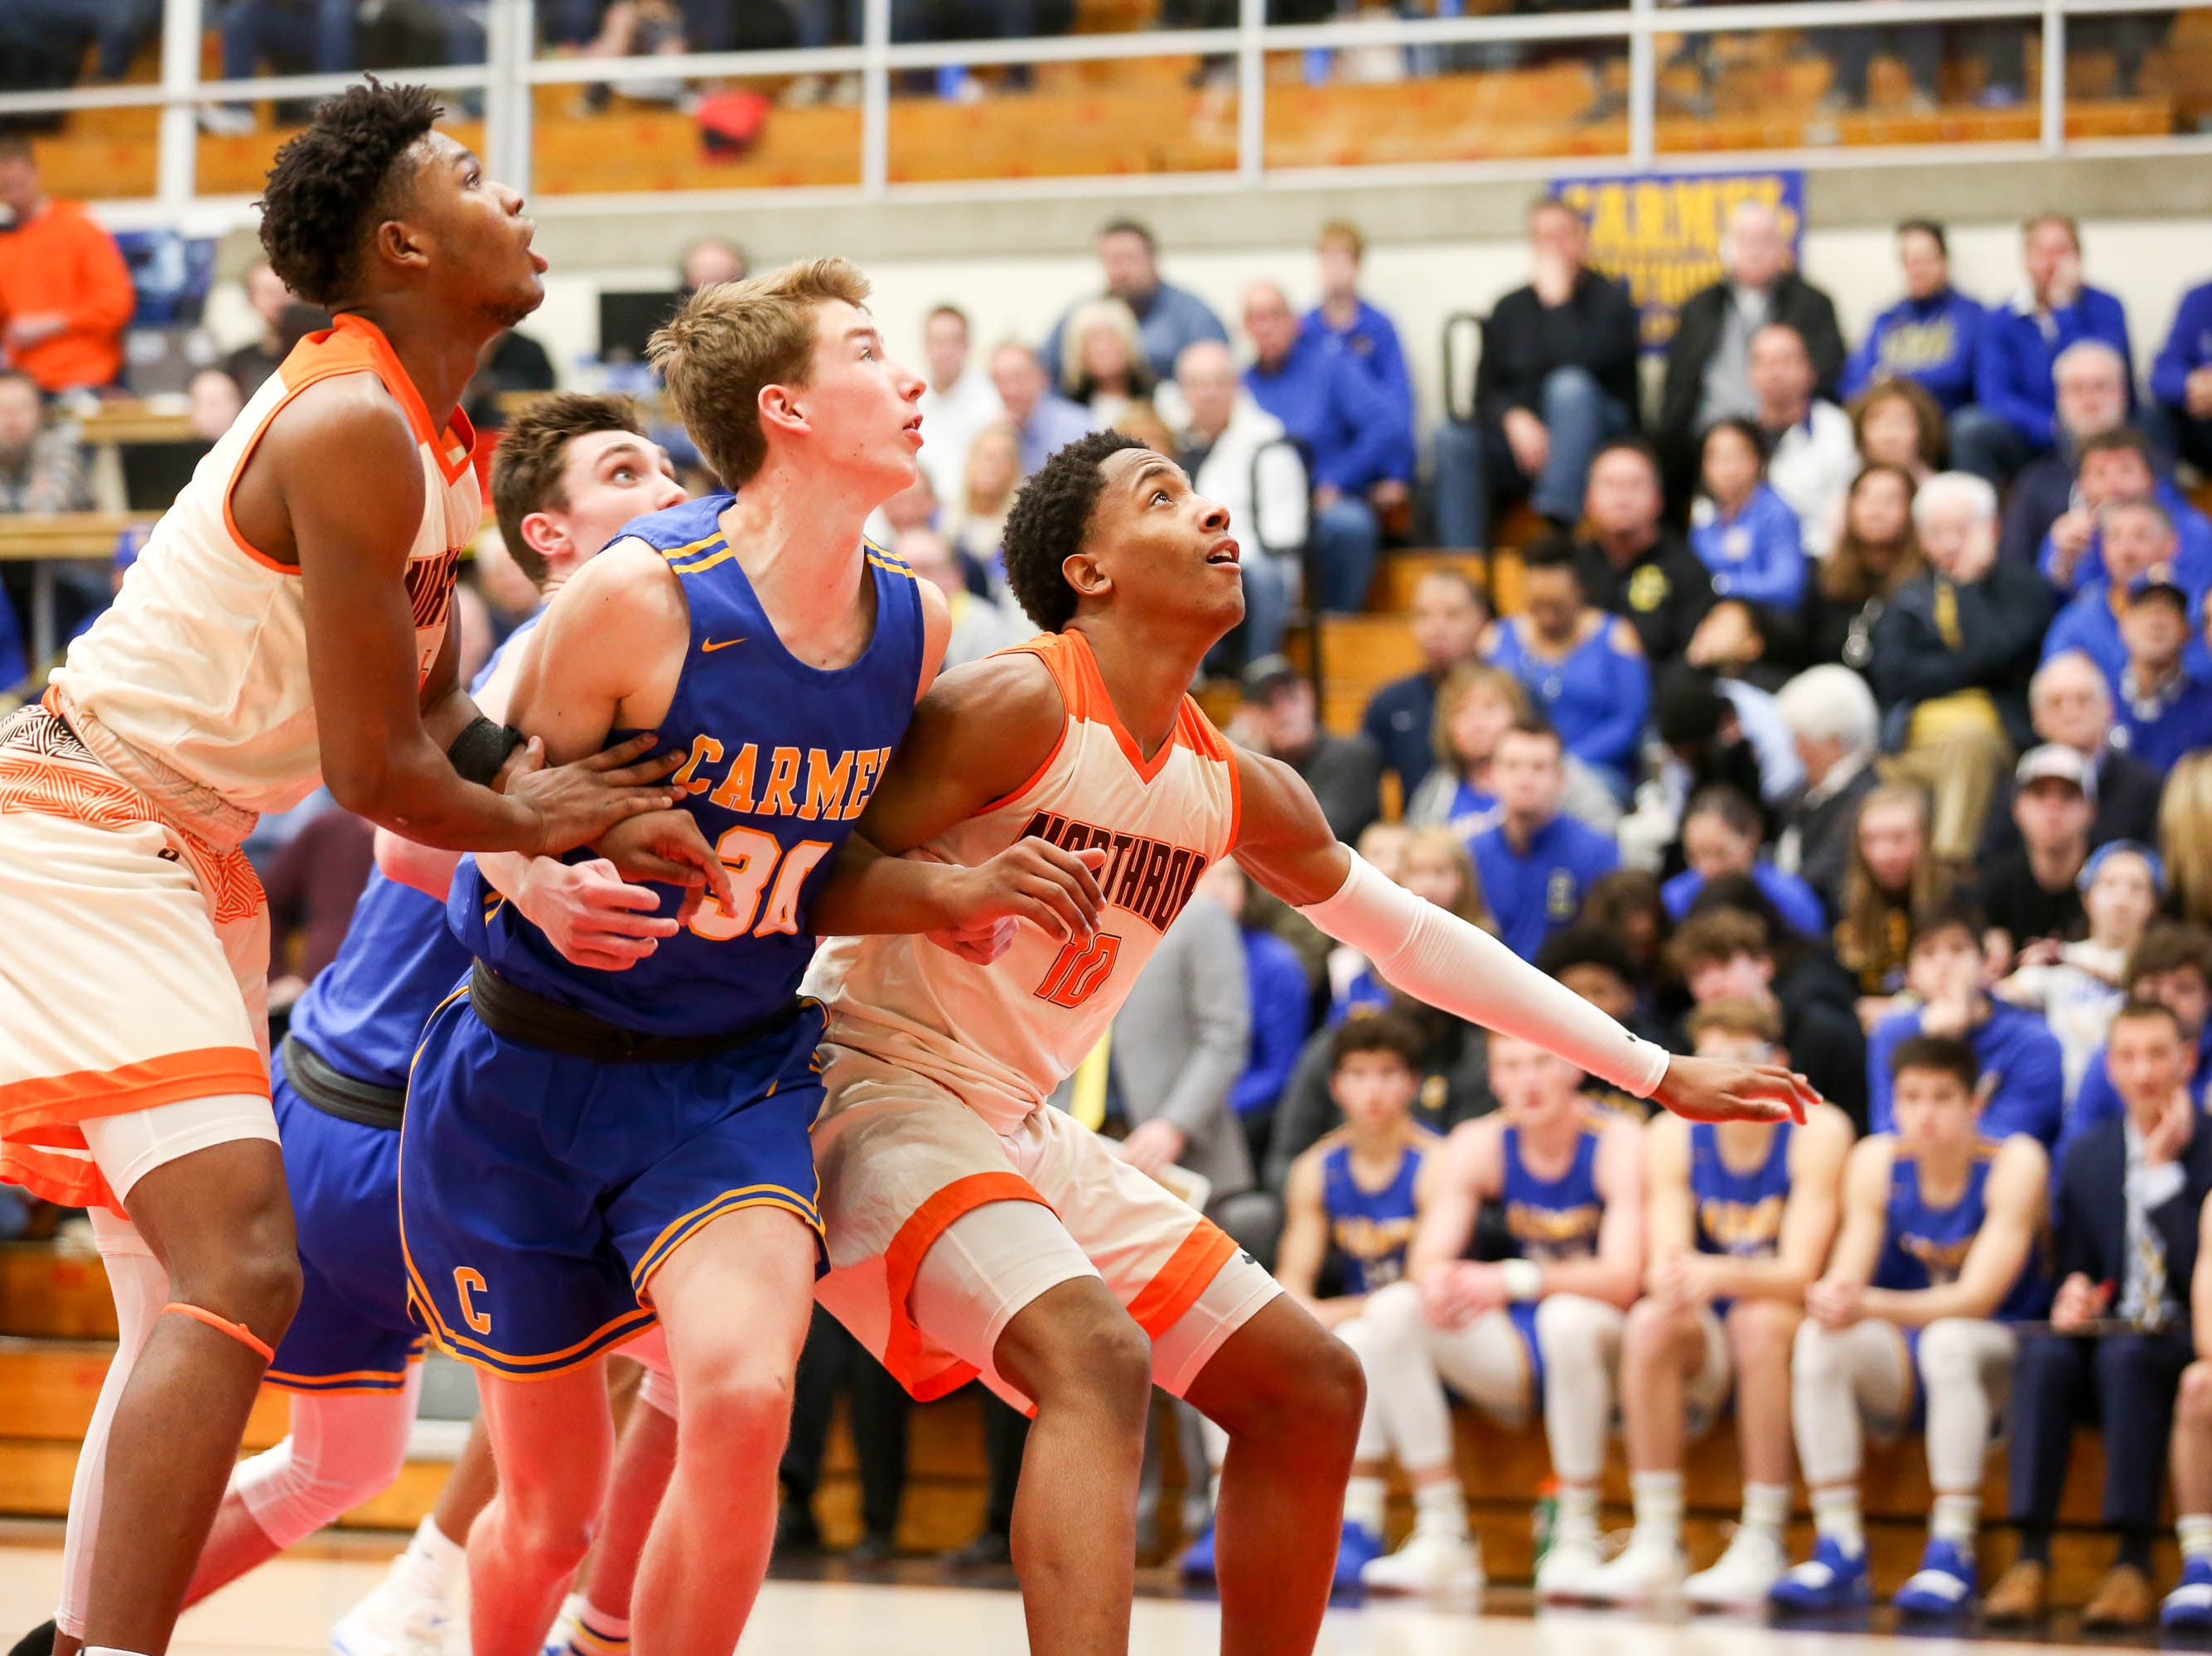 Players watch a 3 point attempt ready to try to get the rebound if missed during the second half of Carmel vs. Fort Wayne Northrop High School in the IHSAA Varsity Boys Regional Semifinals held at Logansport High School, March 9, 2019.